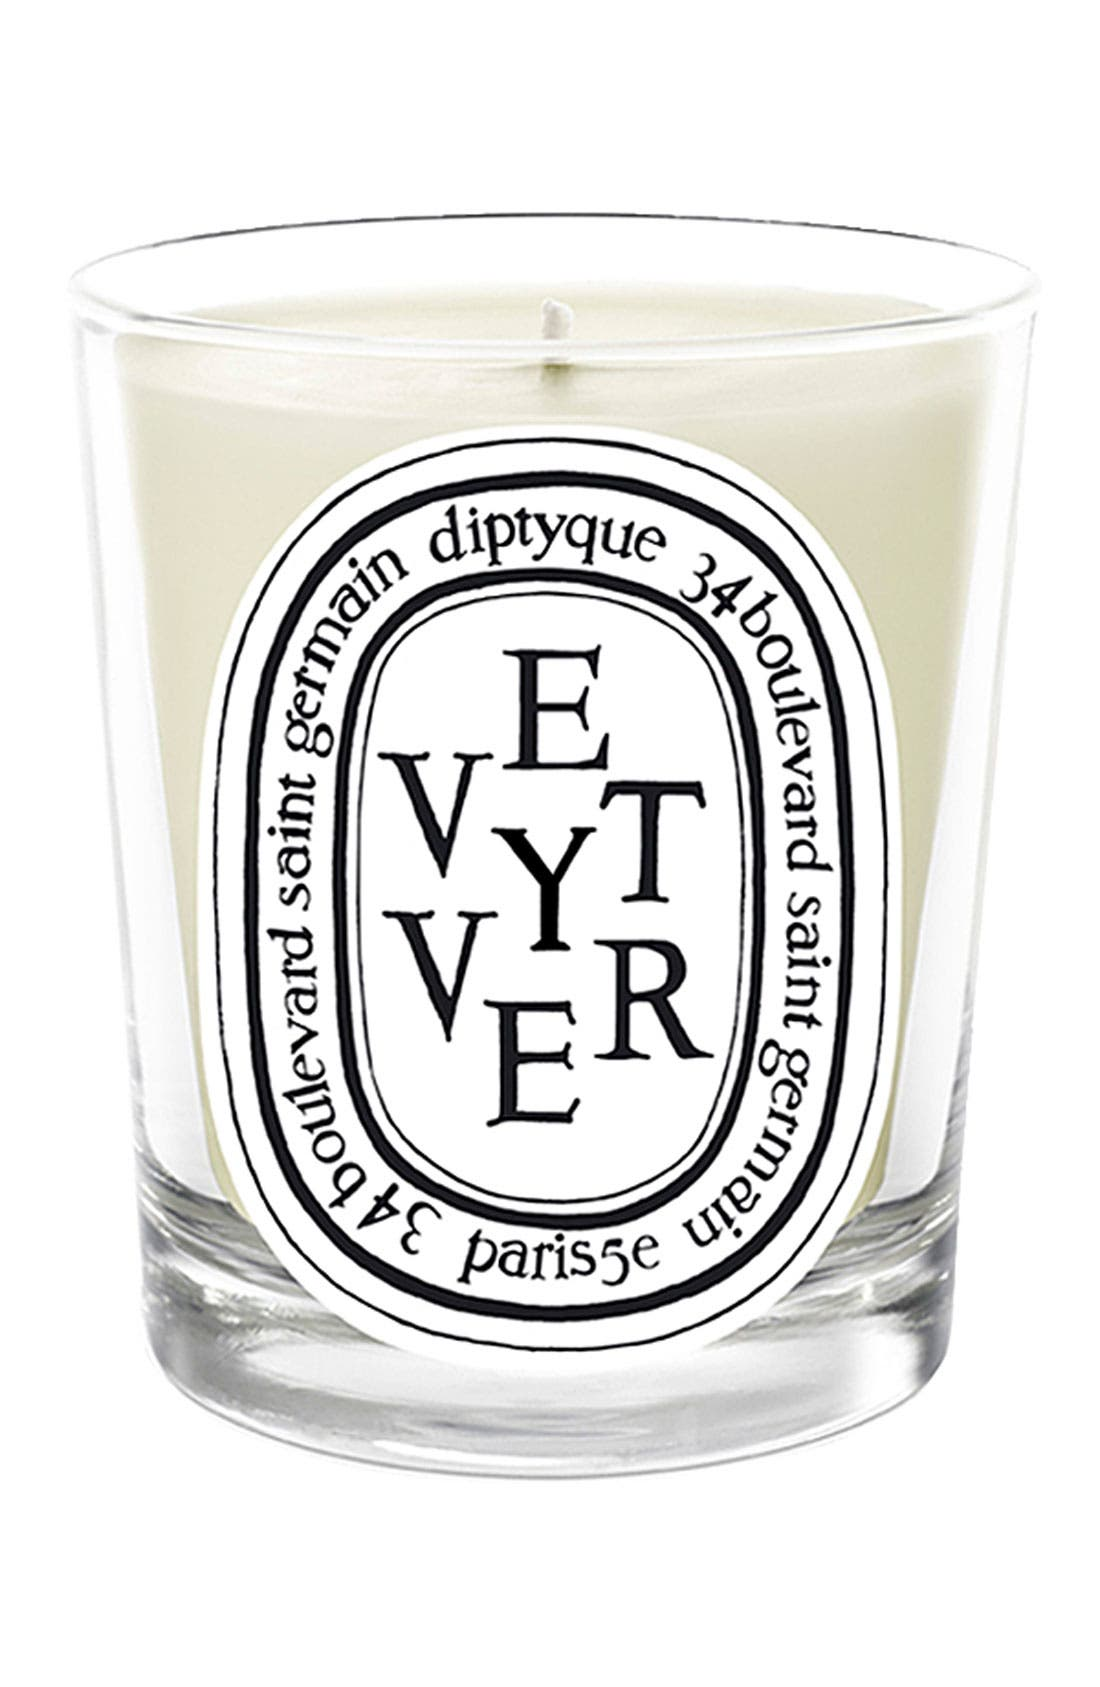 Alternate Image 1 Selected - diptyque 'Vetyver' Scented Candle